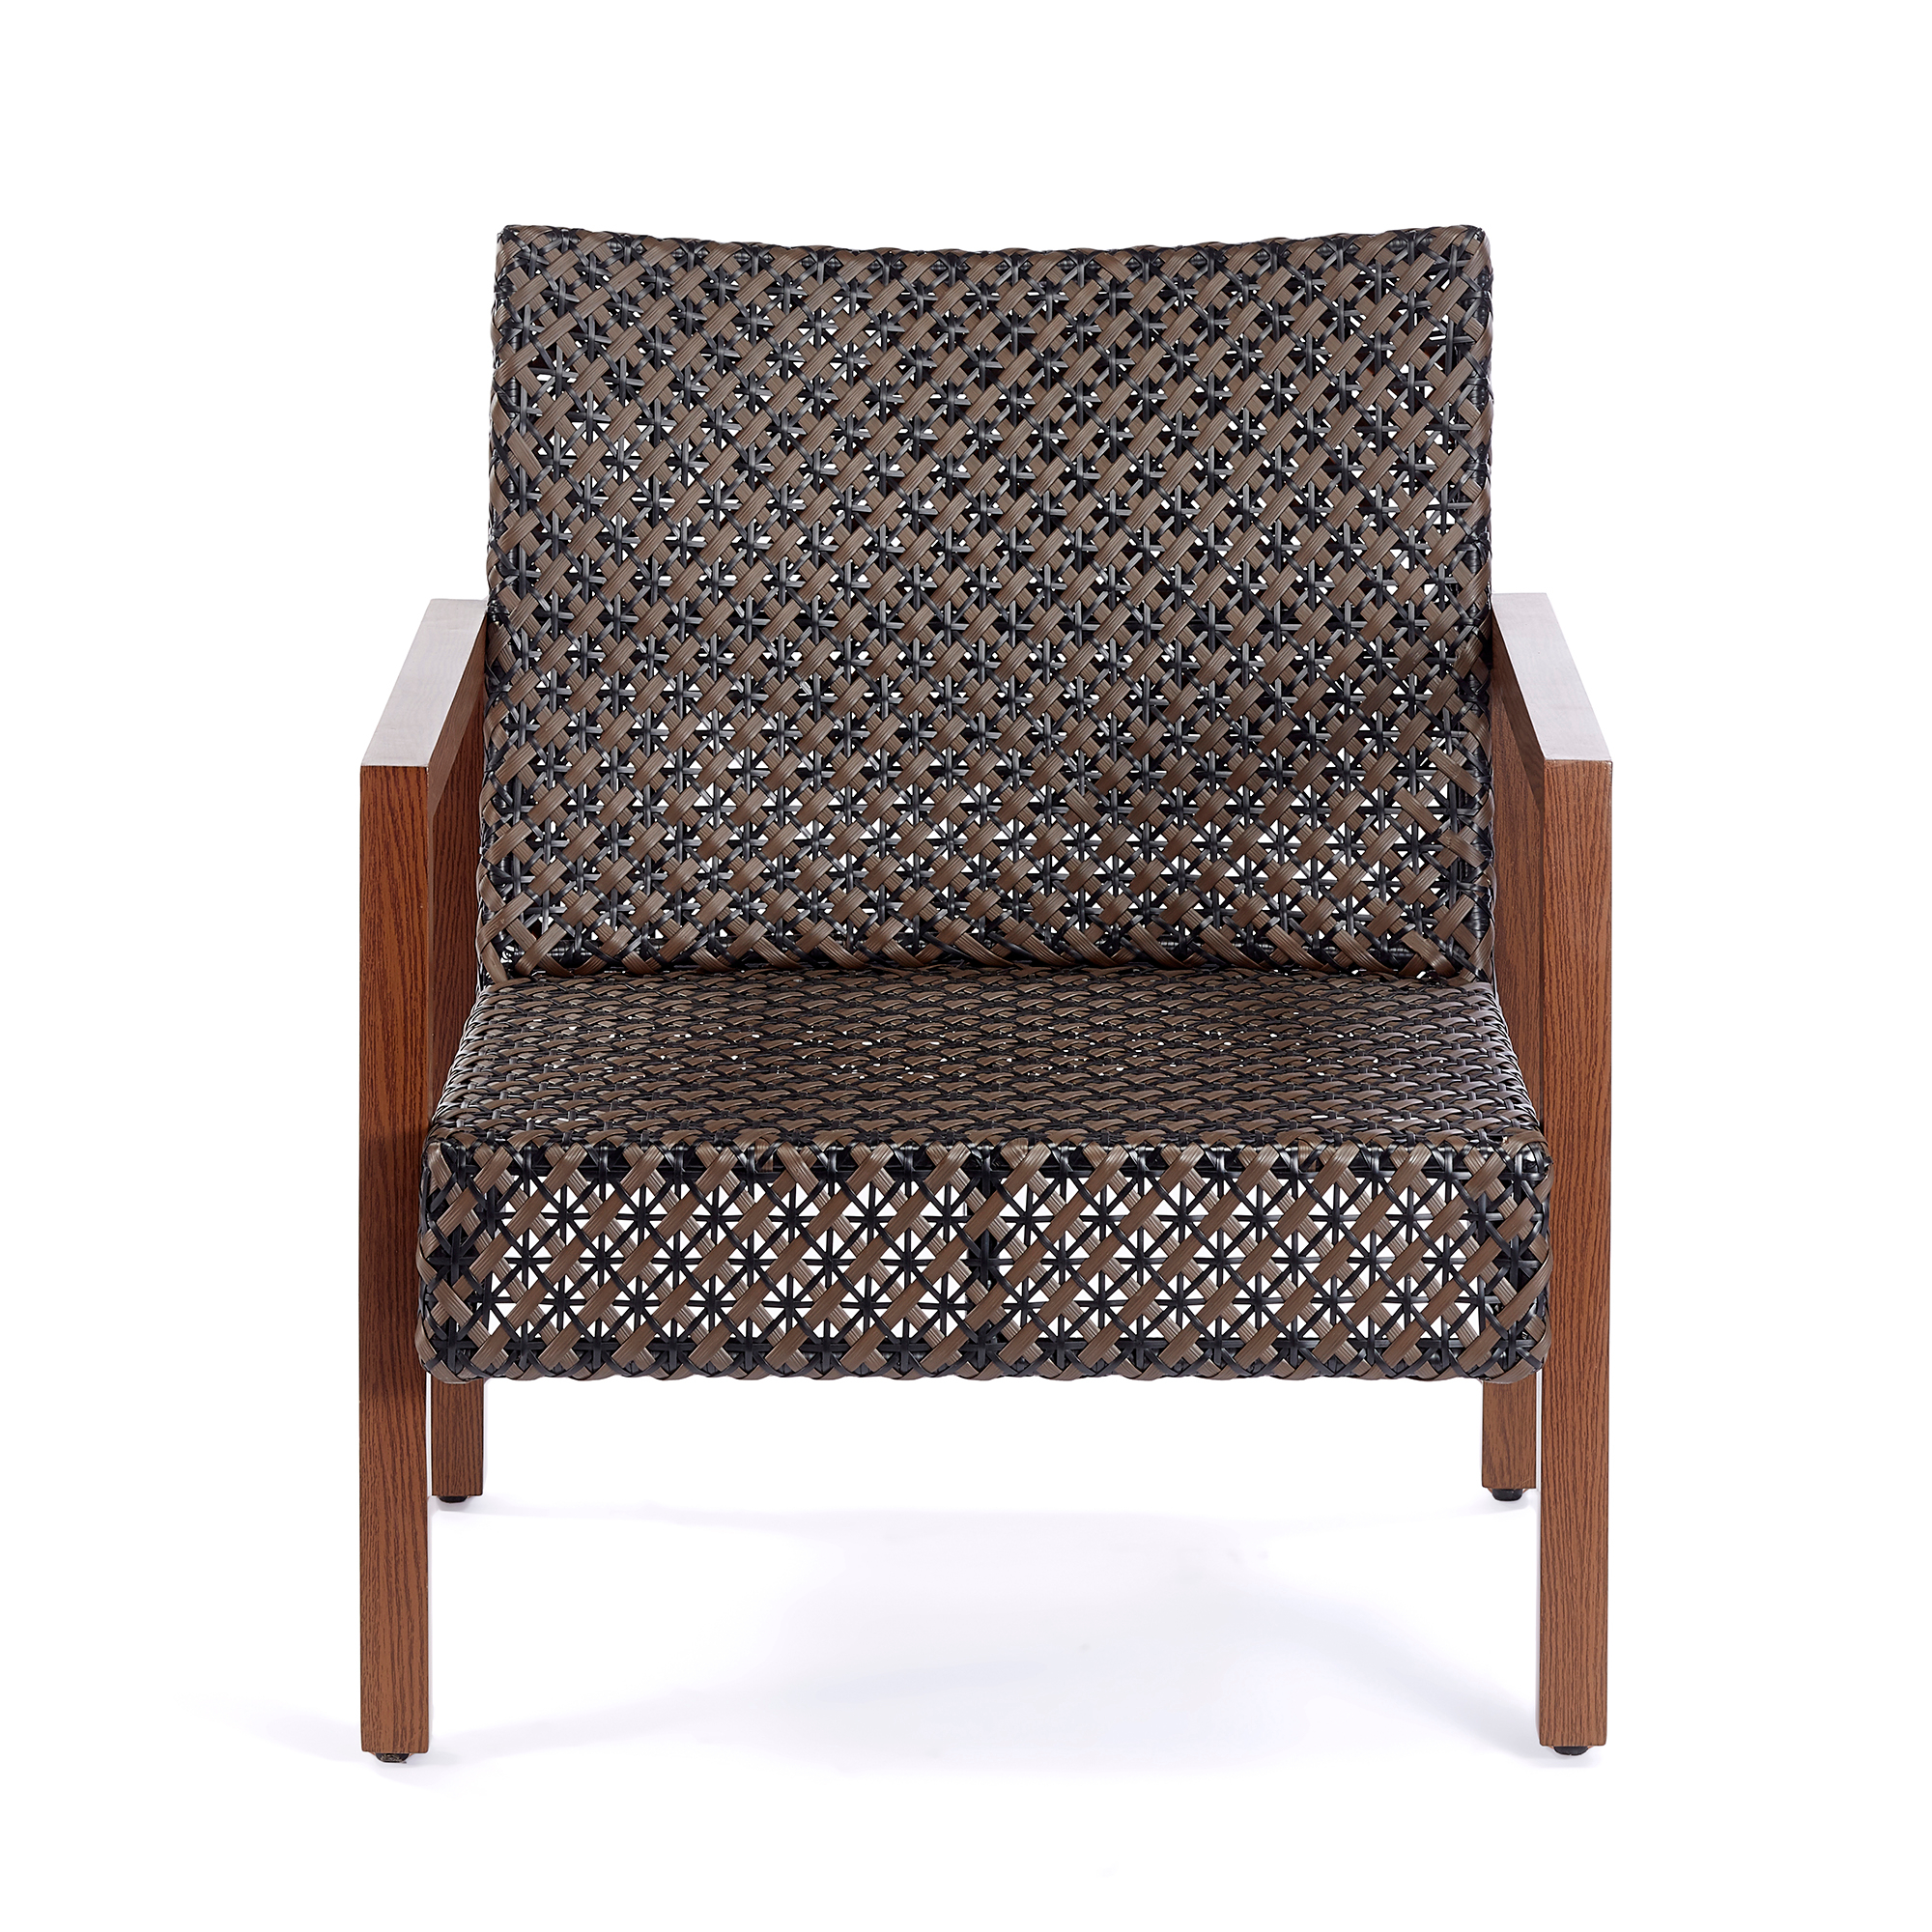 Estella Outdoor Chair